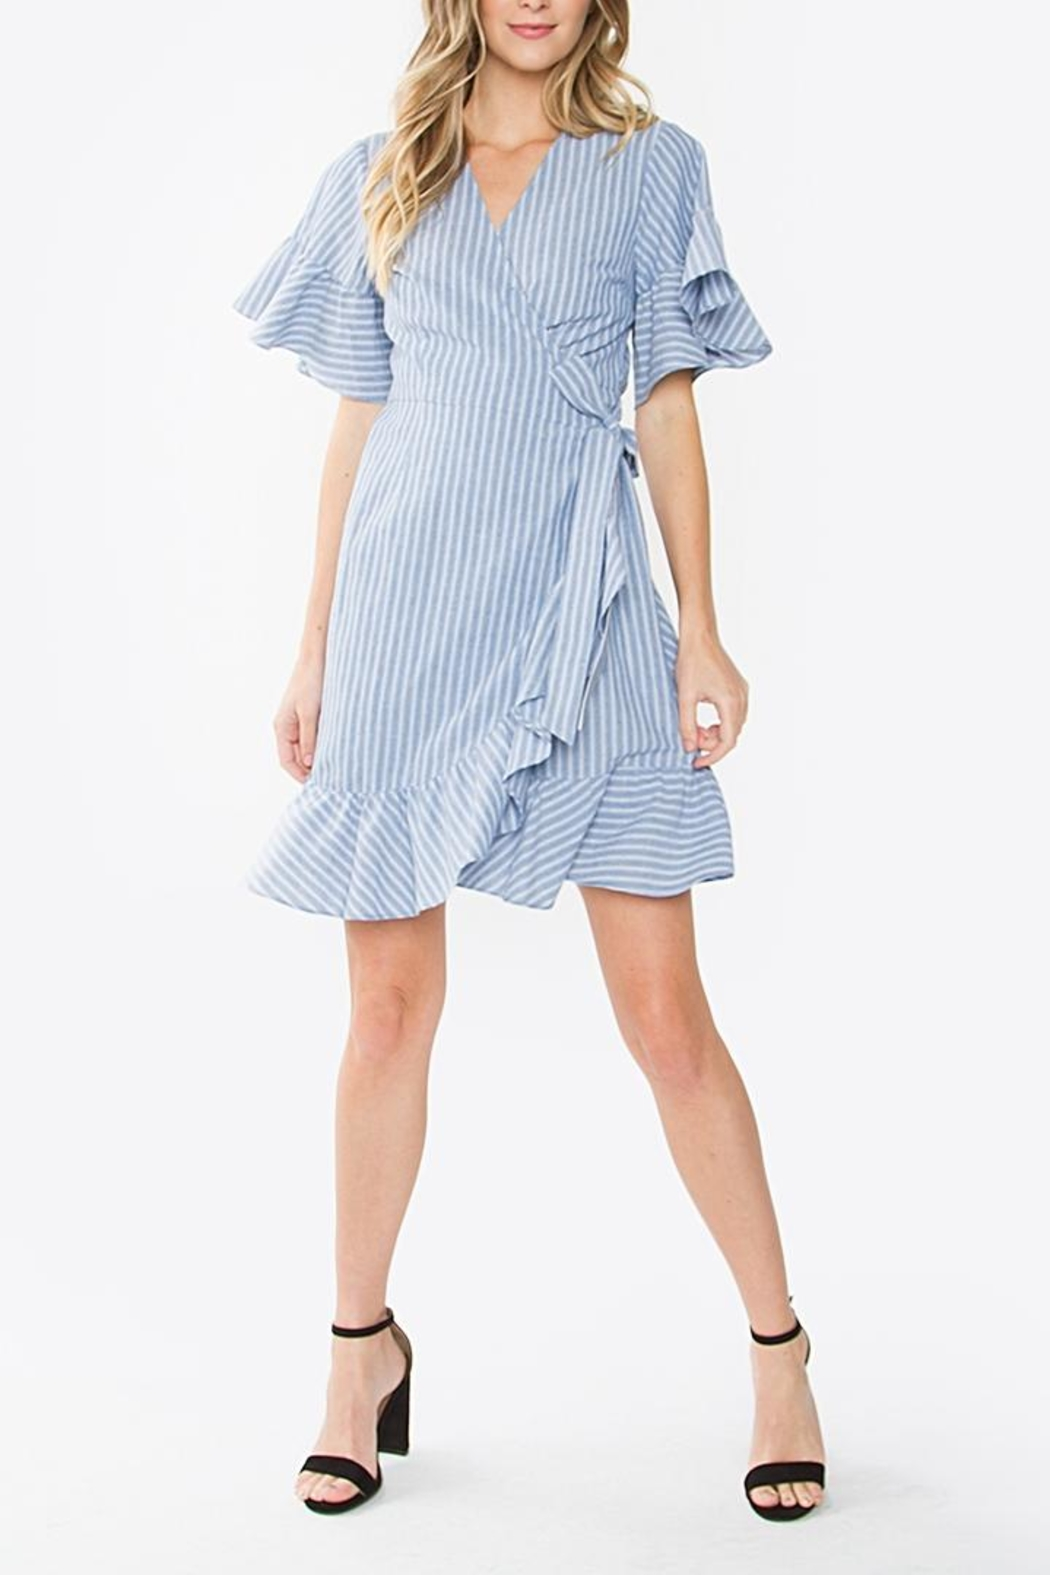 Sugarlips Striped Ruffle Dress - Side Cropped Image